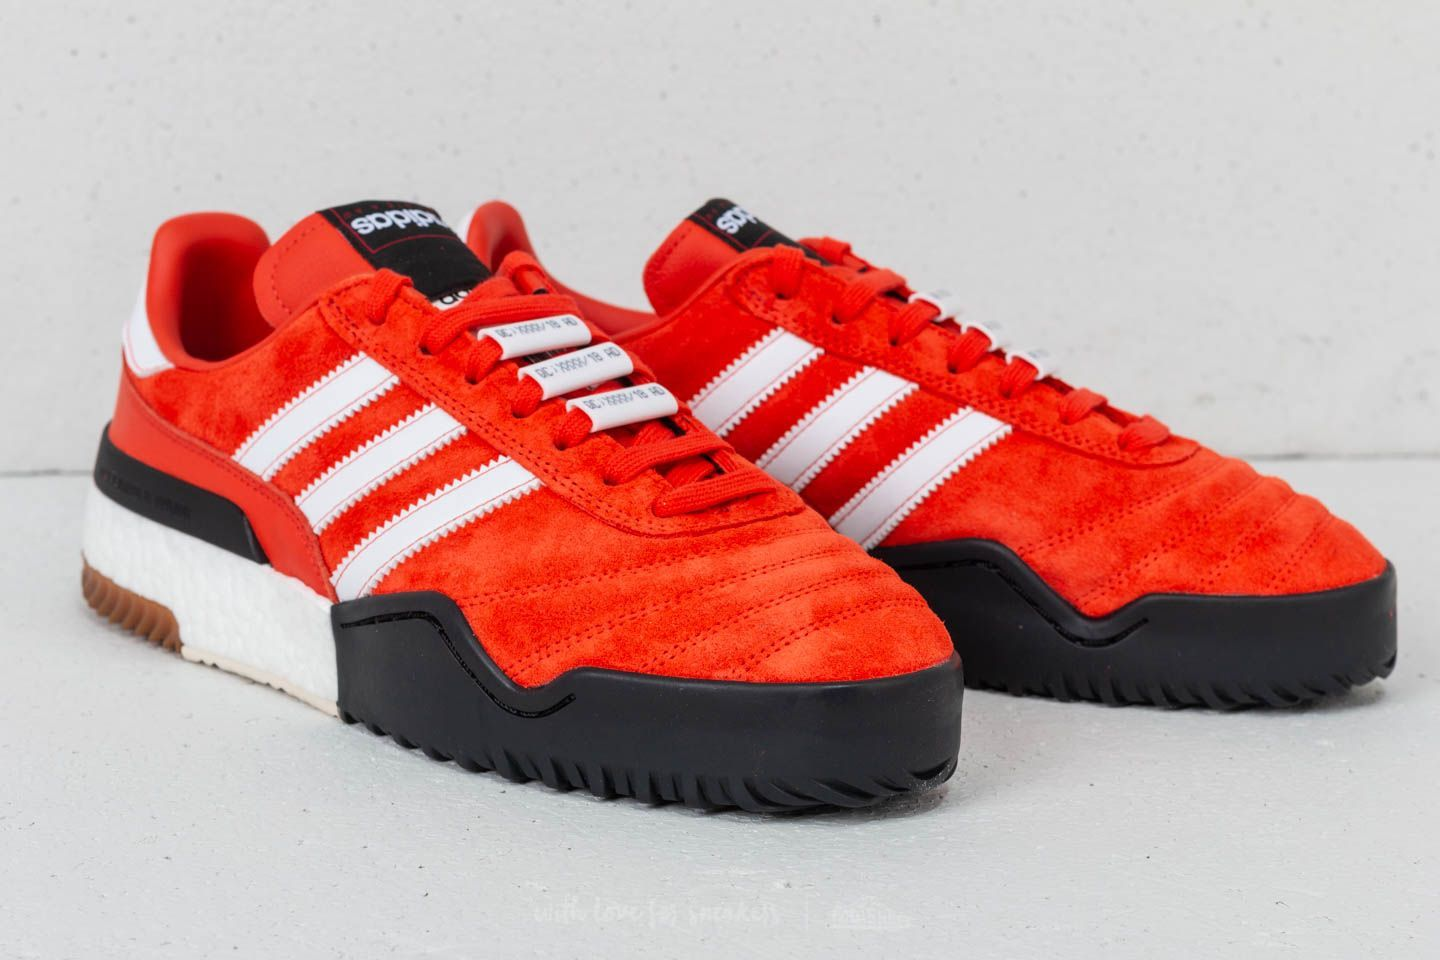 adidas Adidas x Alexander Wang Bball Soccer Bold Orange/ Ftw White/ Core Black lNnLd